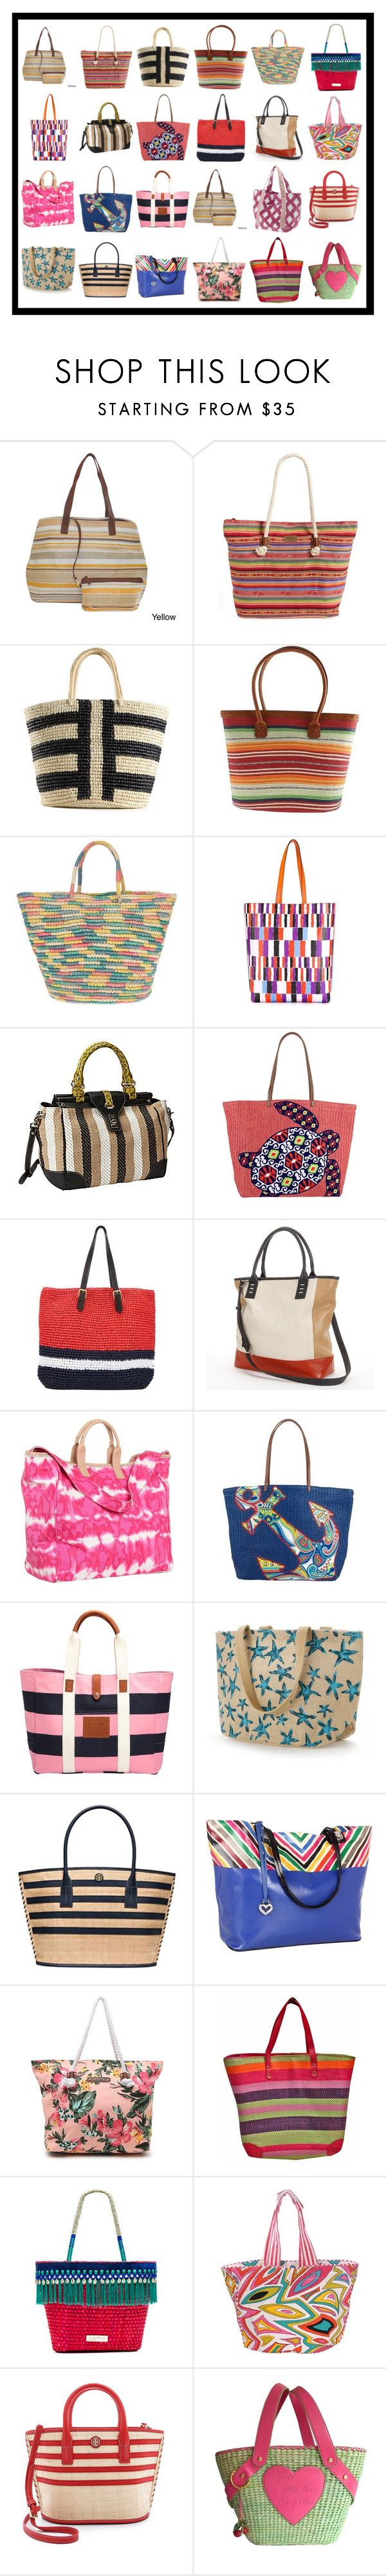 """""""Casual Totes & Straw Beach Totes #1"""" by franceseattle ❤ liked on Polyvore featuring Rip Curl, Sensi Studio, Pendleton, Emilio Pucci, Rafé New York, Vera Bradley, Marni, PAVA, Juicy Couture and Jack Wills"""